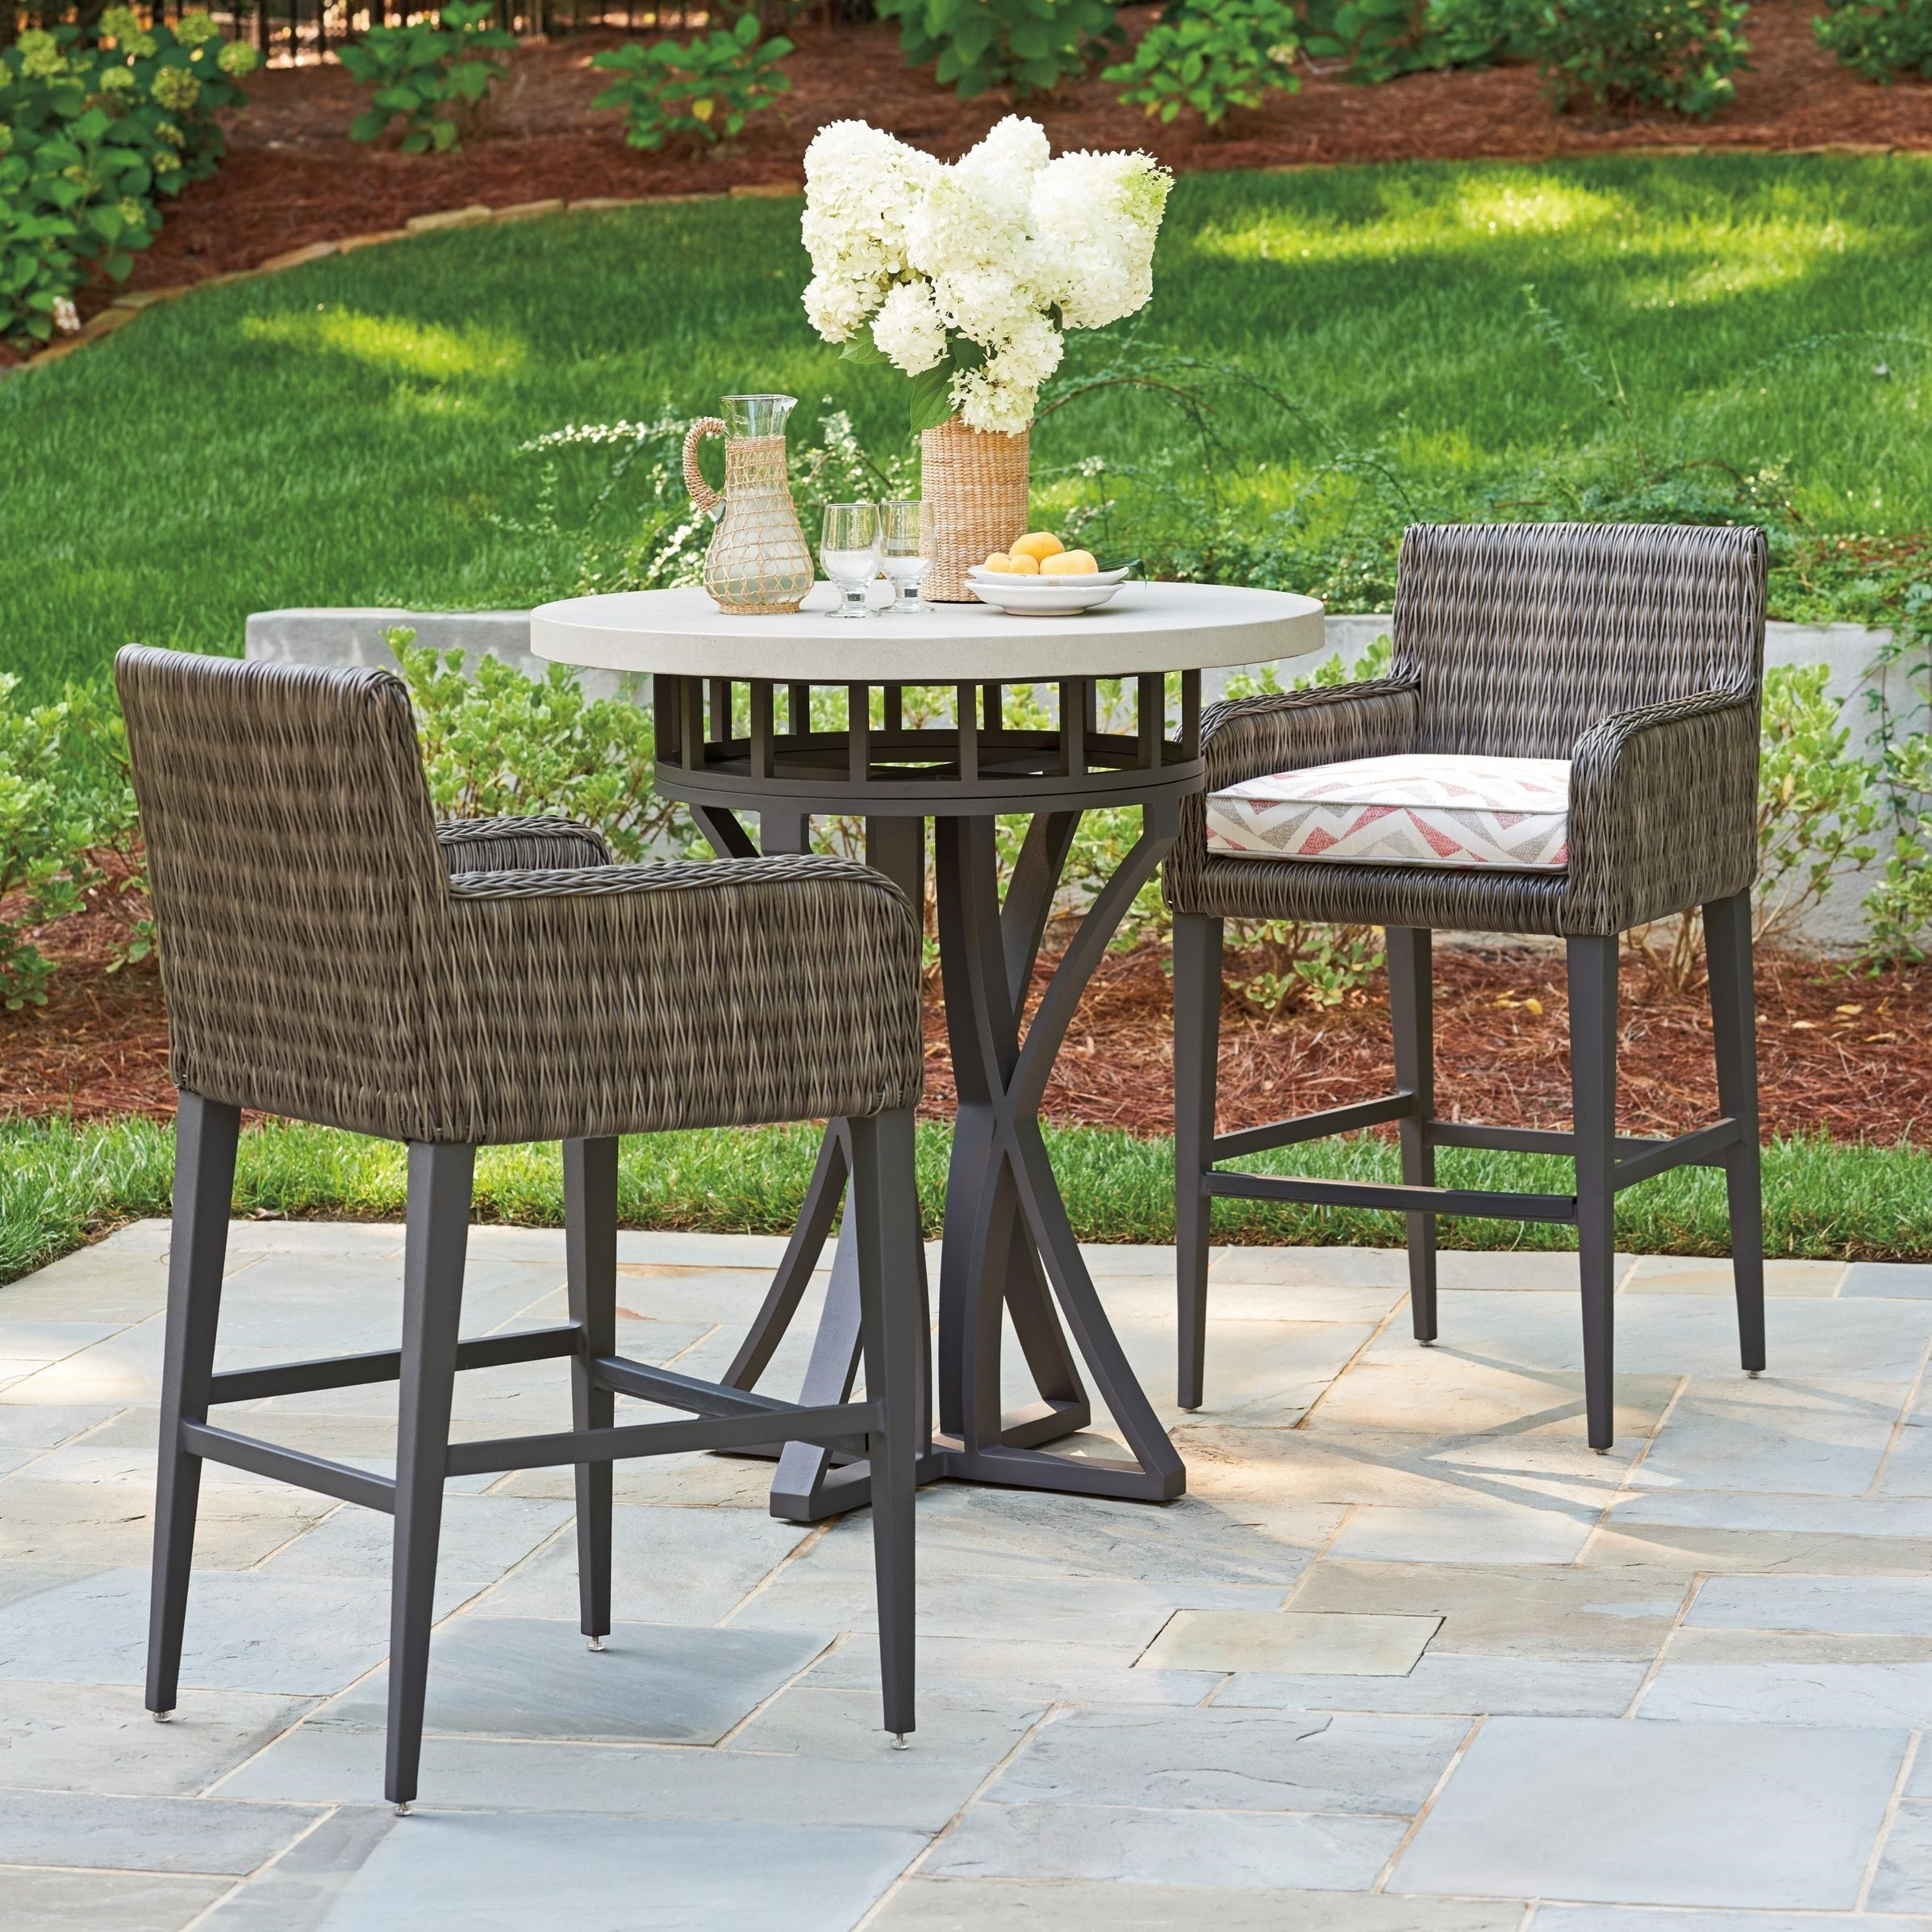 Cypress Point Ocean Terrace 3 Pc Outdoor Pub Dining Set by Tommy Bahama Outdoor Living at Baer's Furniture